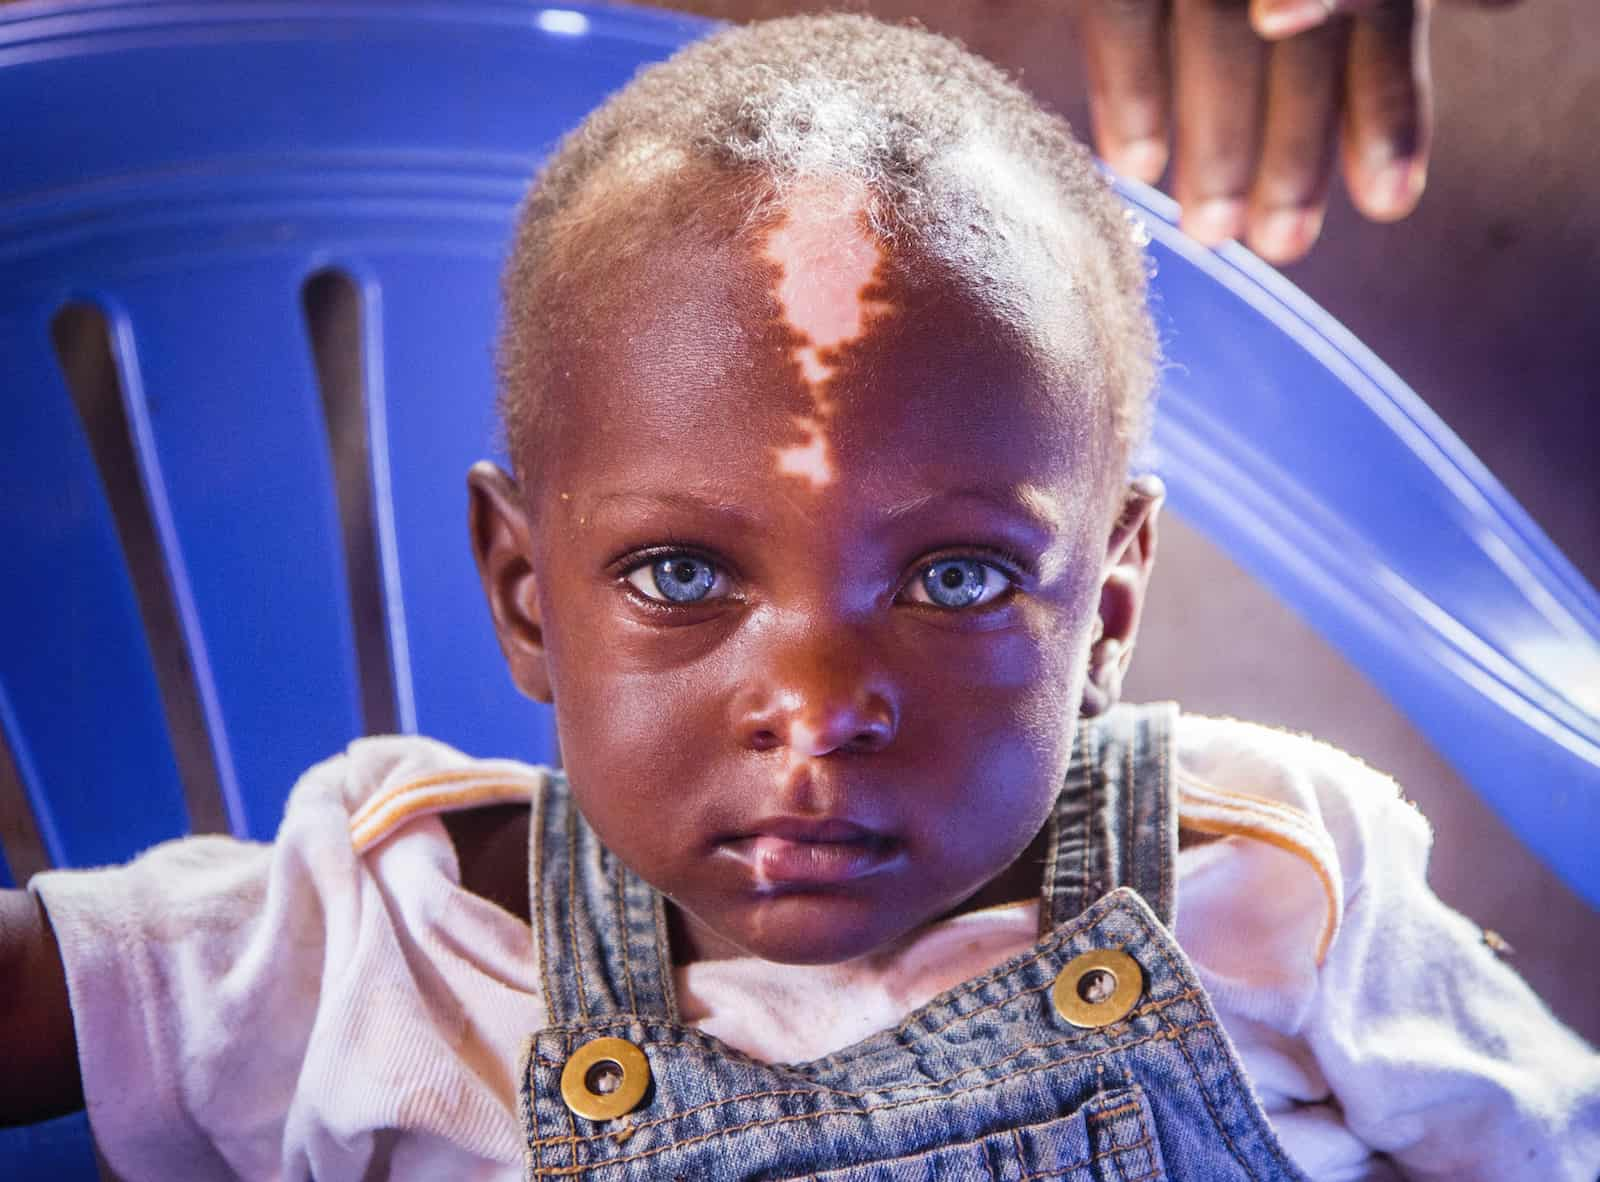 Waardenburg syndrome picture - An up-close photo of a Ugandan boy with blue eyes and a white stripe of skin down his forehead.